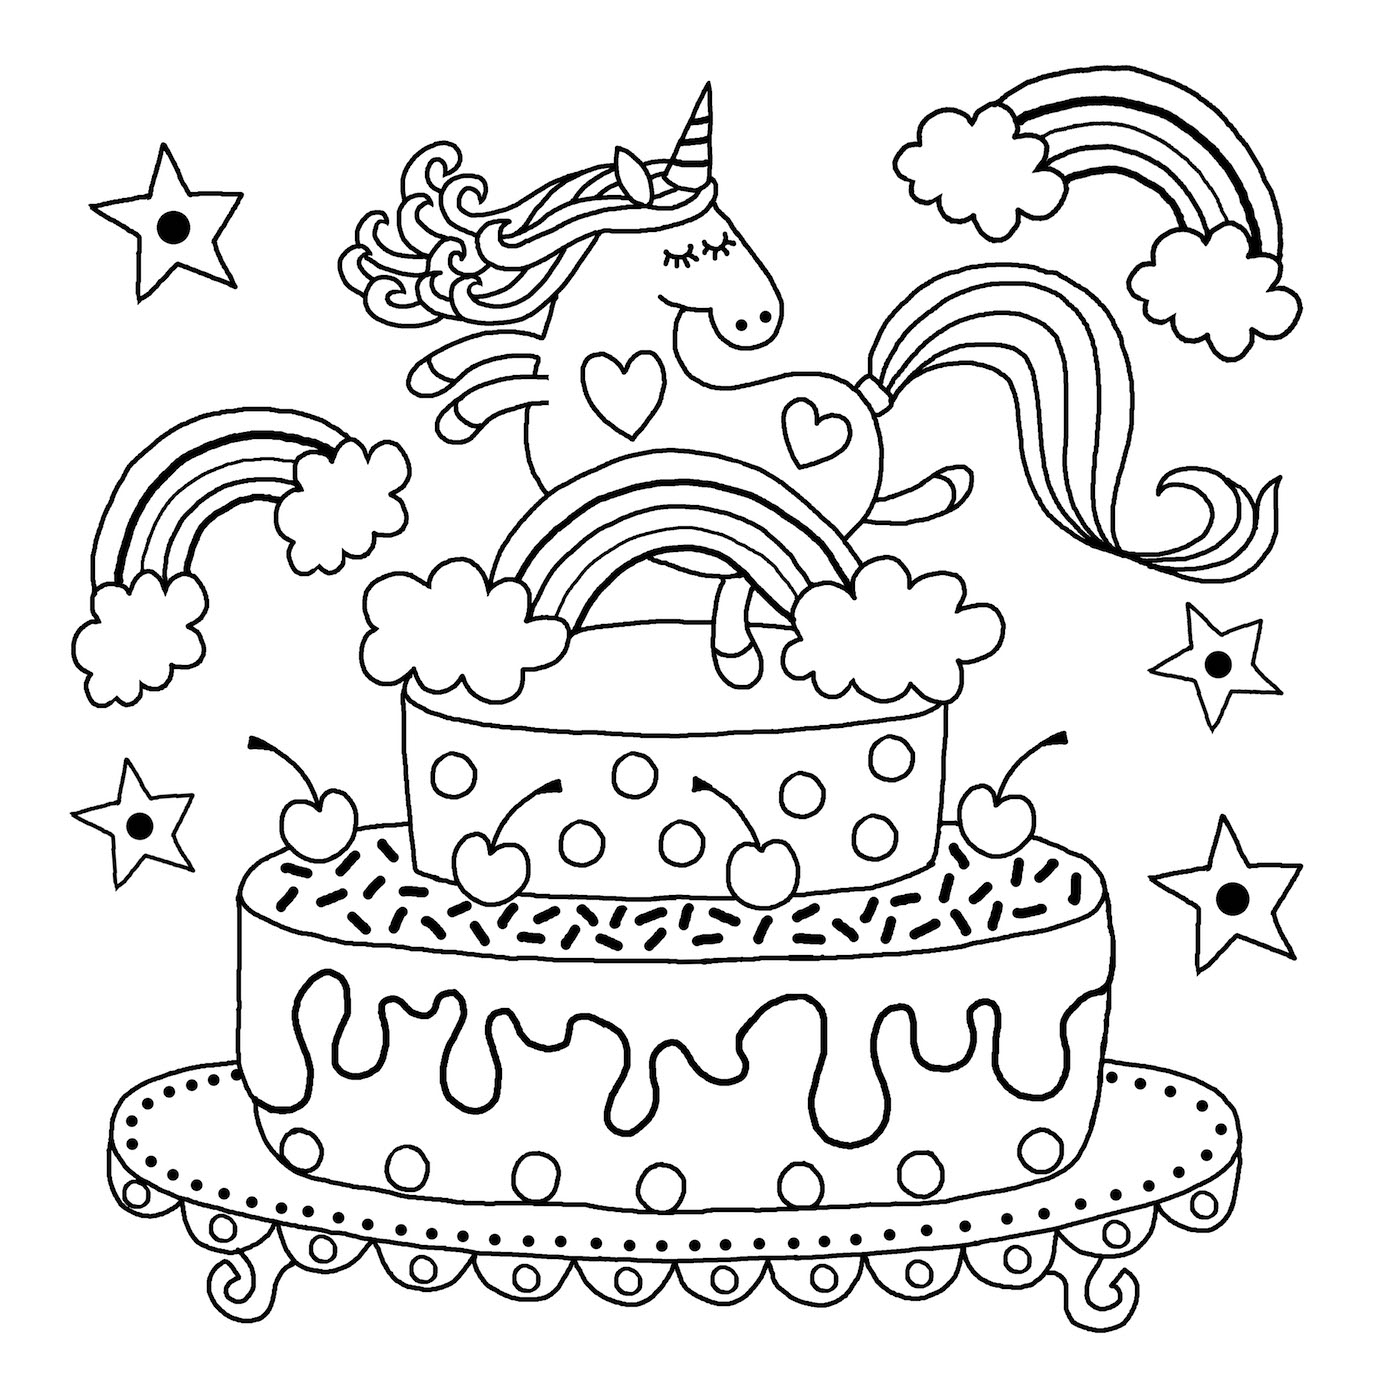 free printable coloring pages of unicorns cute unicorn coloring page free printable coloring pages coloring pages unicorns printable of free